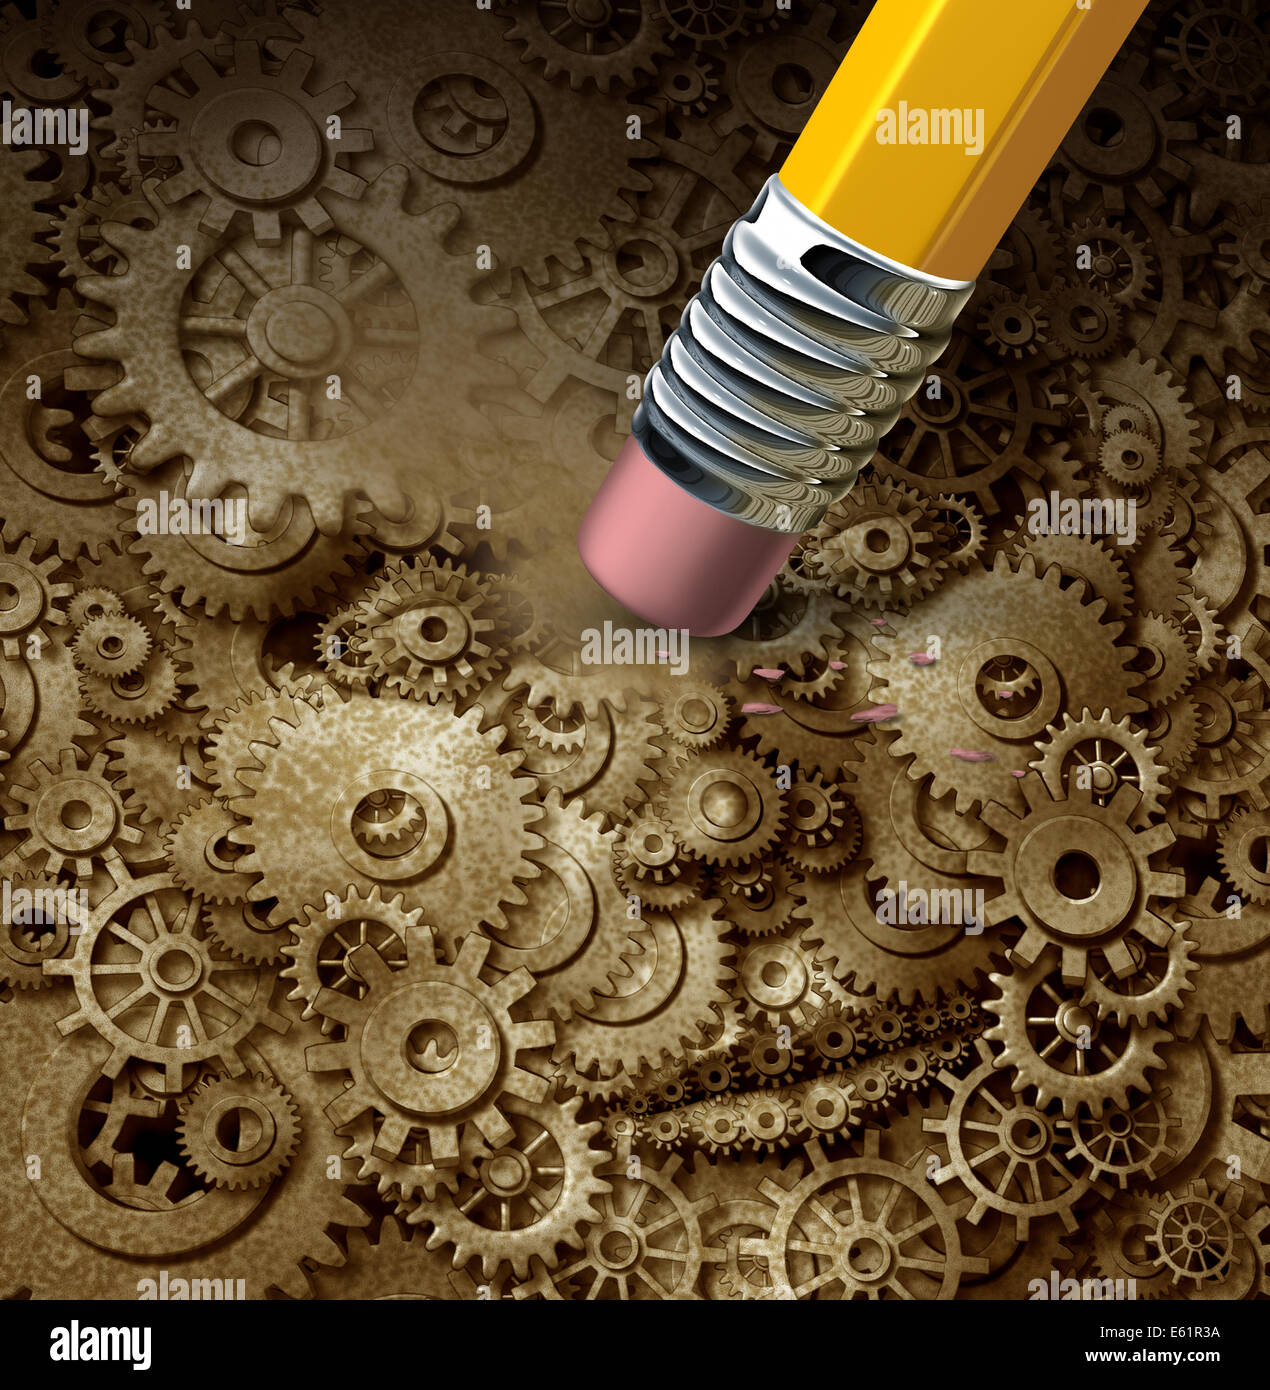 Losing function concept as a frontal head made of machine gears and cogs on a grunge background being erased by - Stock Image